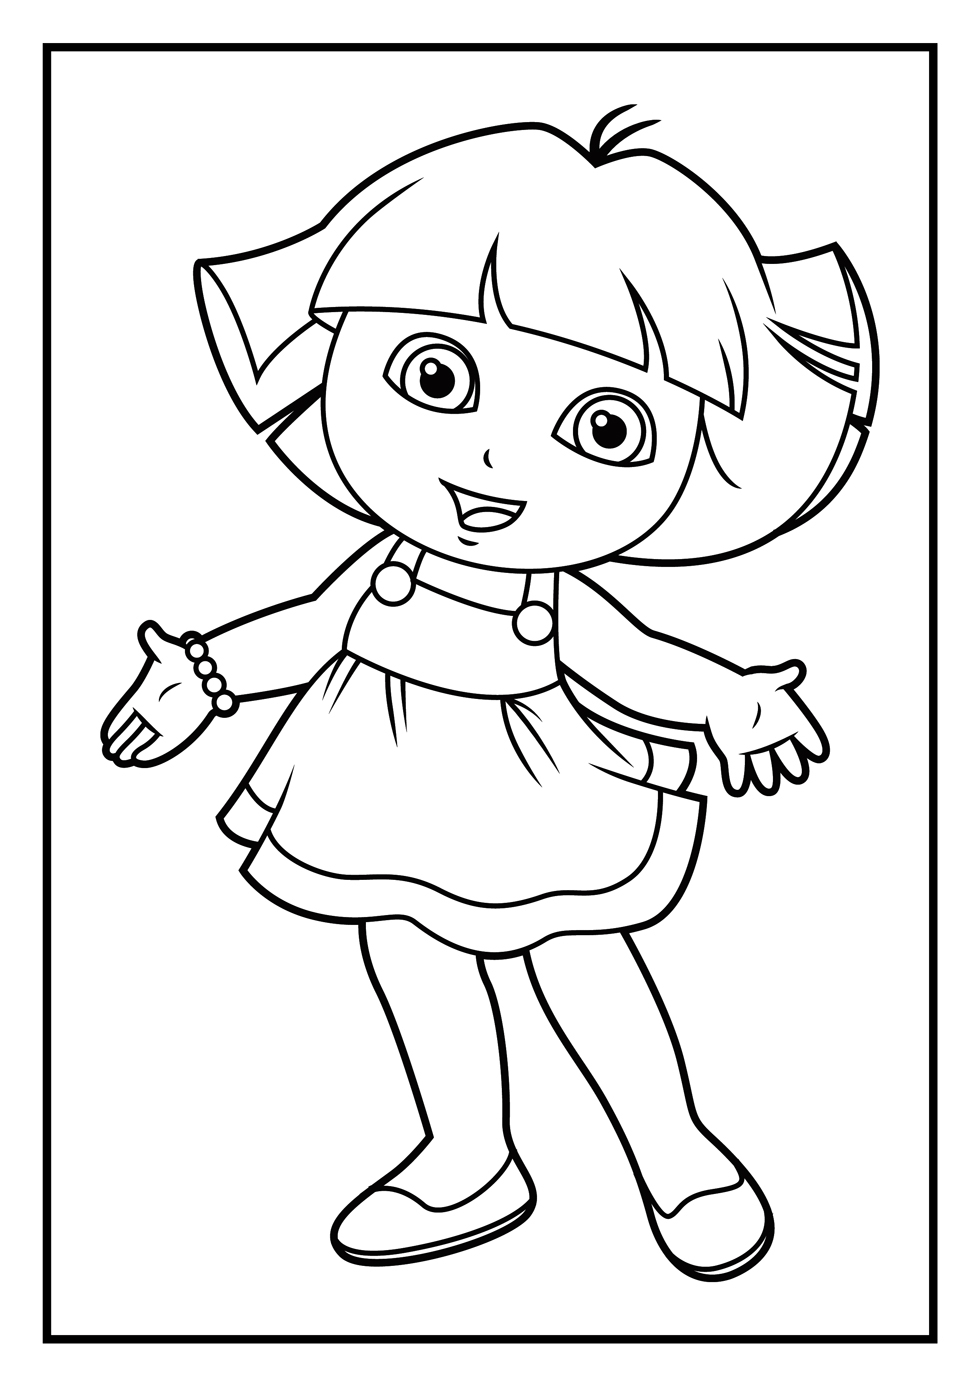 Dora Coloring Page Dora Coloring Pages Diego Coloring Pages ...